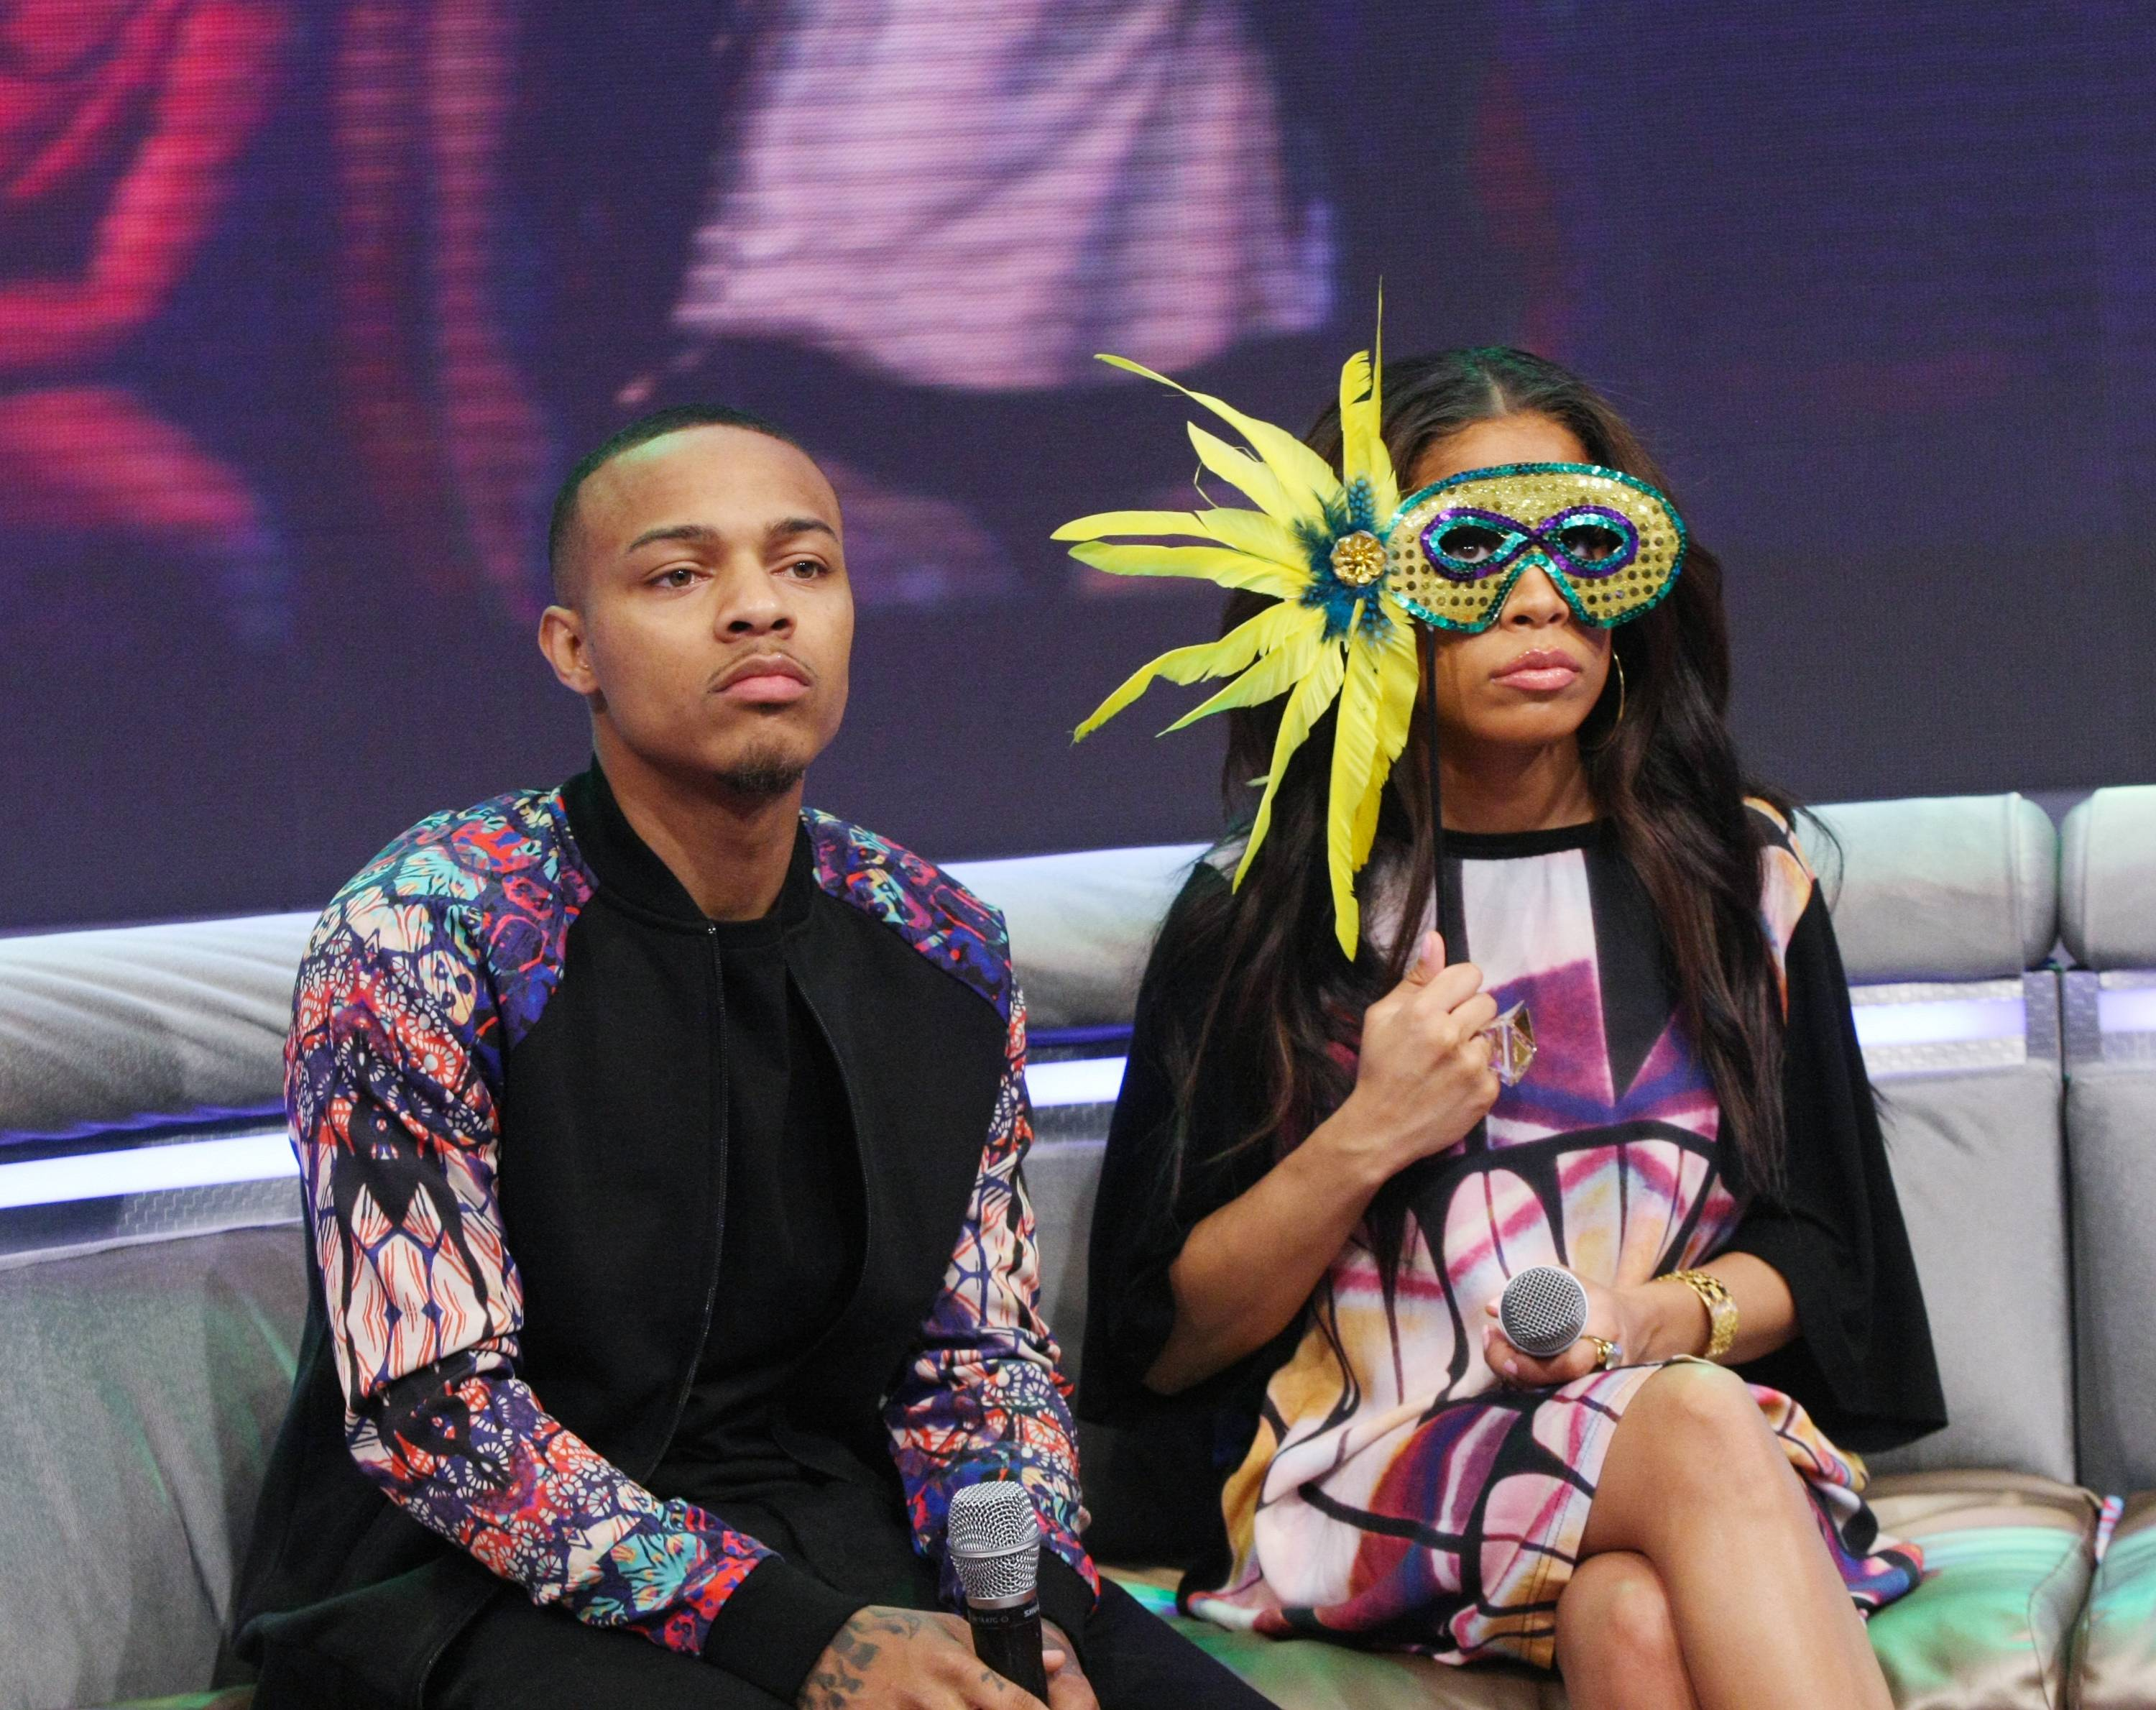 Behind the Veil - NEW YORK, NY - MARCH 04: 106 & Park hosts Bow Wow and Keshia Chante attend 106 & Park at BET studio on March 4, 2014 in New York City.(Photo: Bennett Raglin/BET/Getty Images for BET)